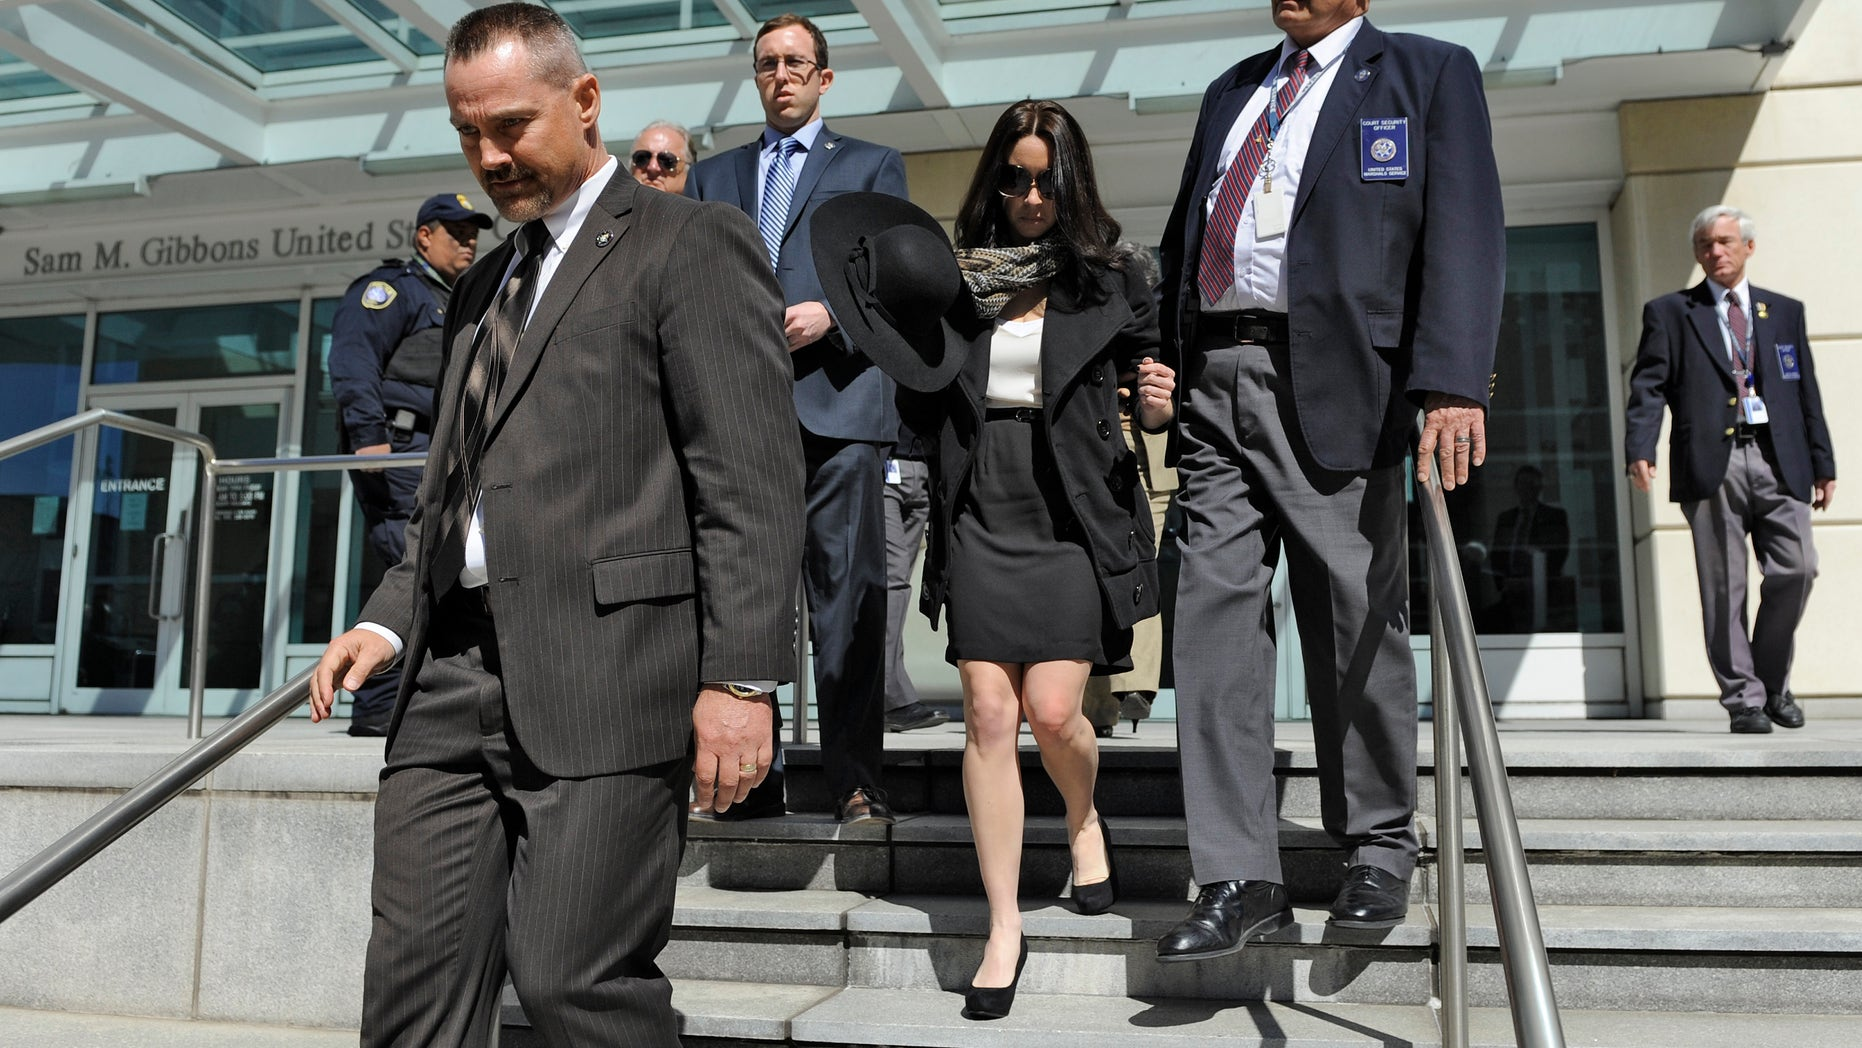 March 4, 2013: Casey Anthony, center, leaves the United States Courthouse in Tampa, Fla., with U.S. Marshals after a bankruptcy hearing in Tampa, Fla. Anthony has not made any public appearances since she left jail after being acquitted in 2011 for the murder of her two-year-old daughter Caylee.